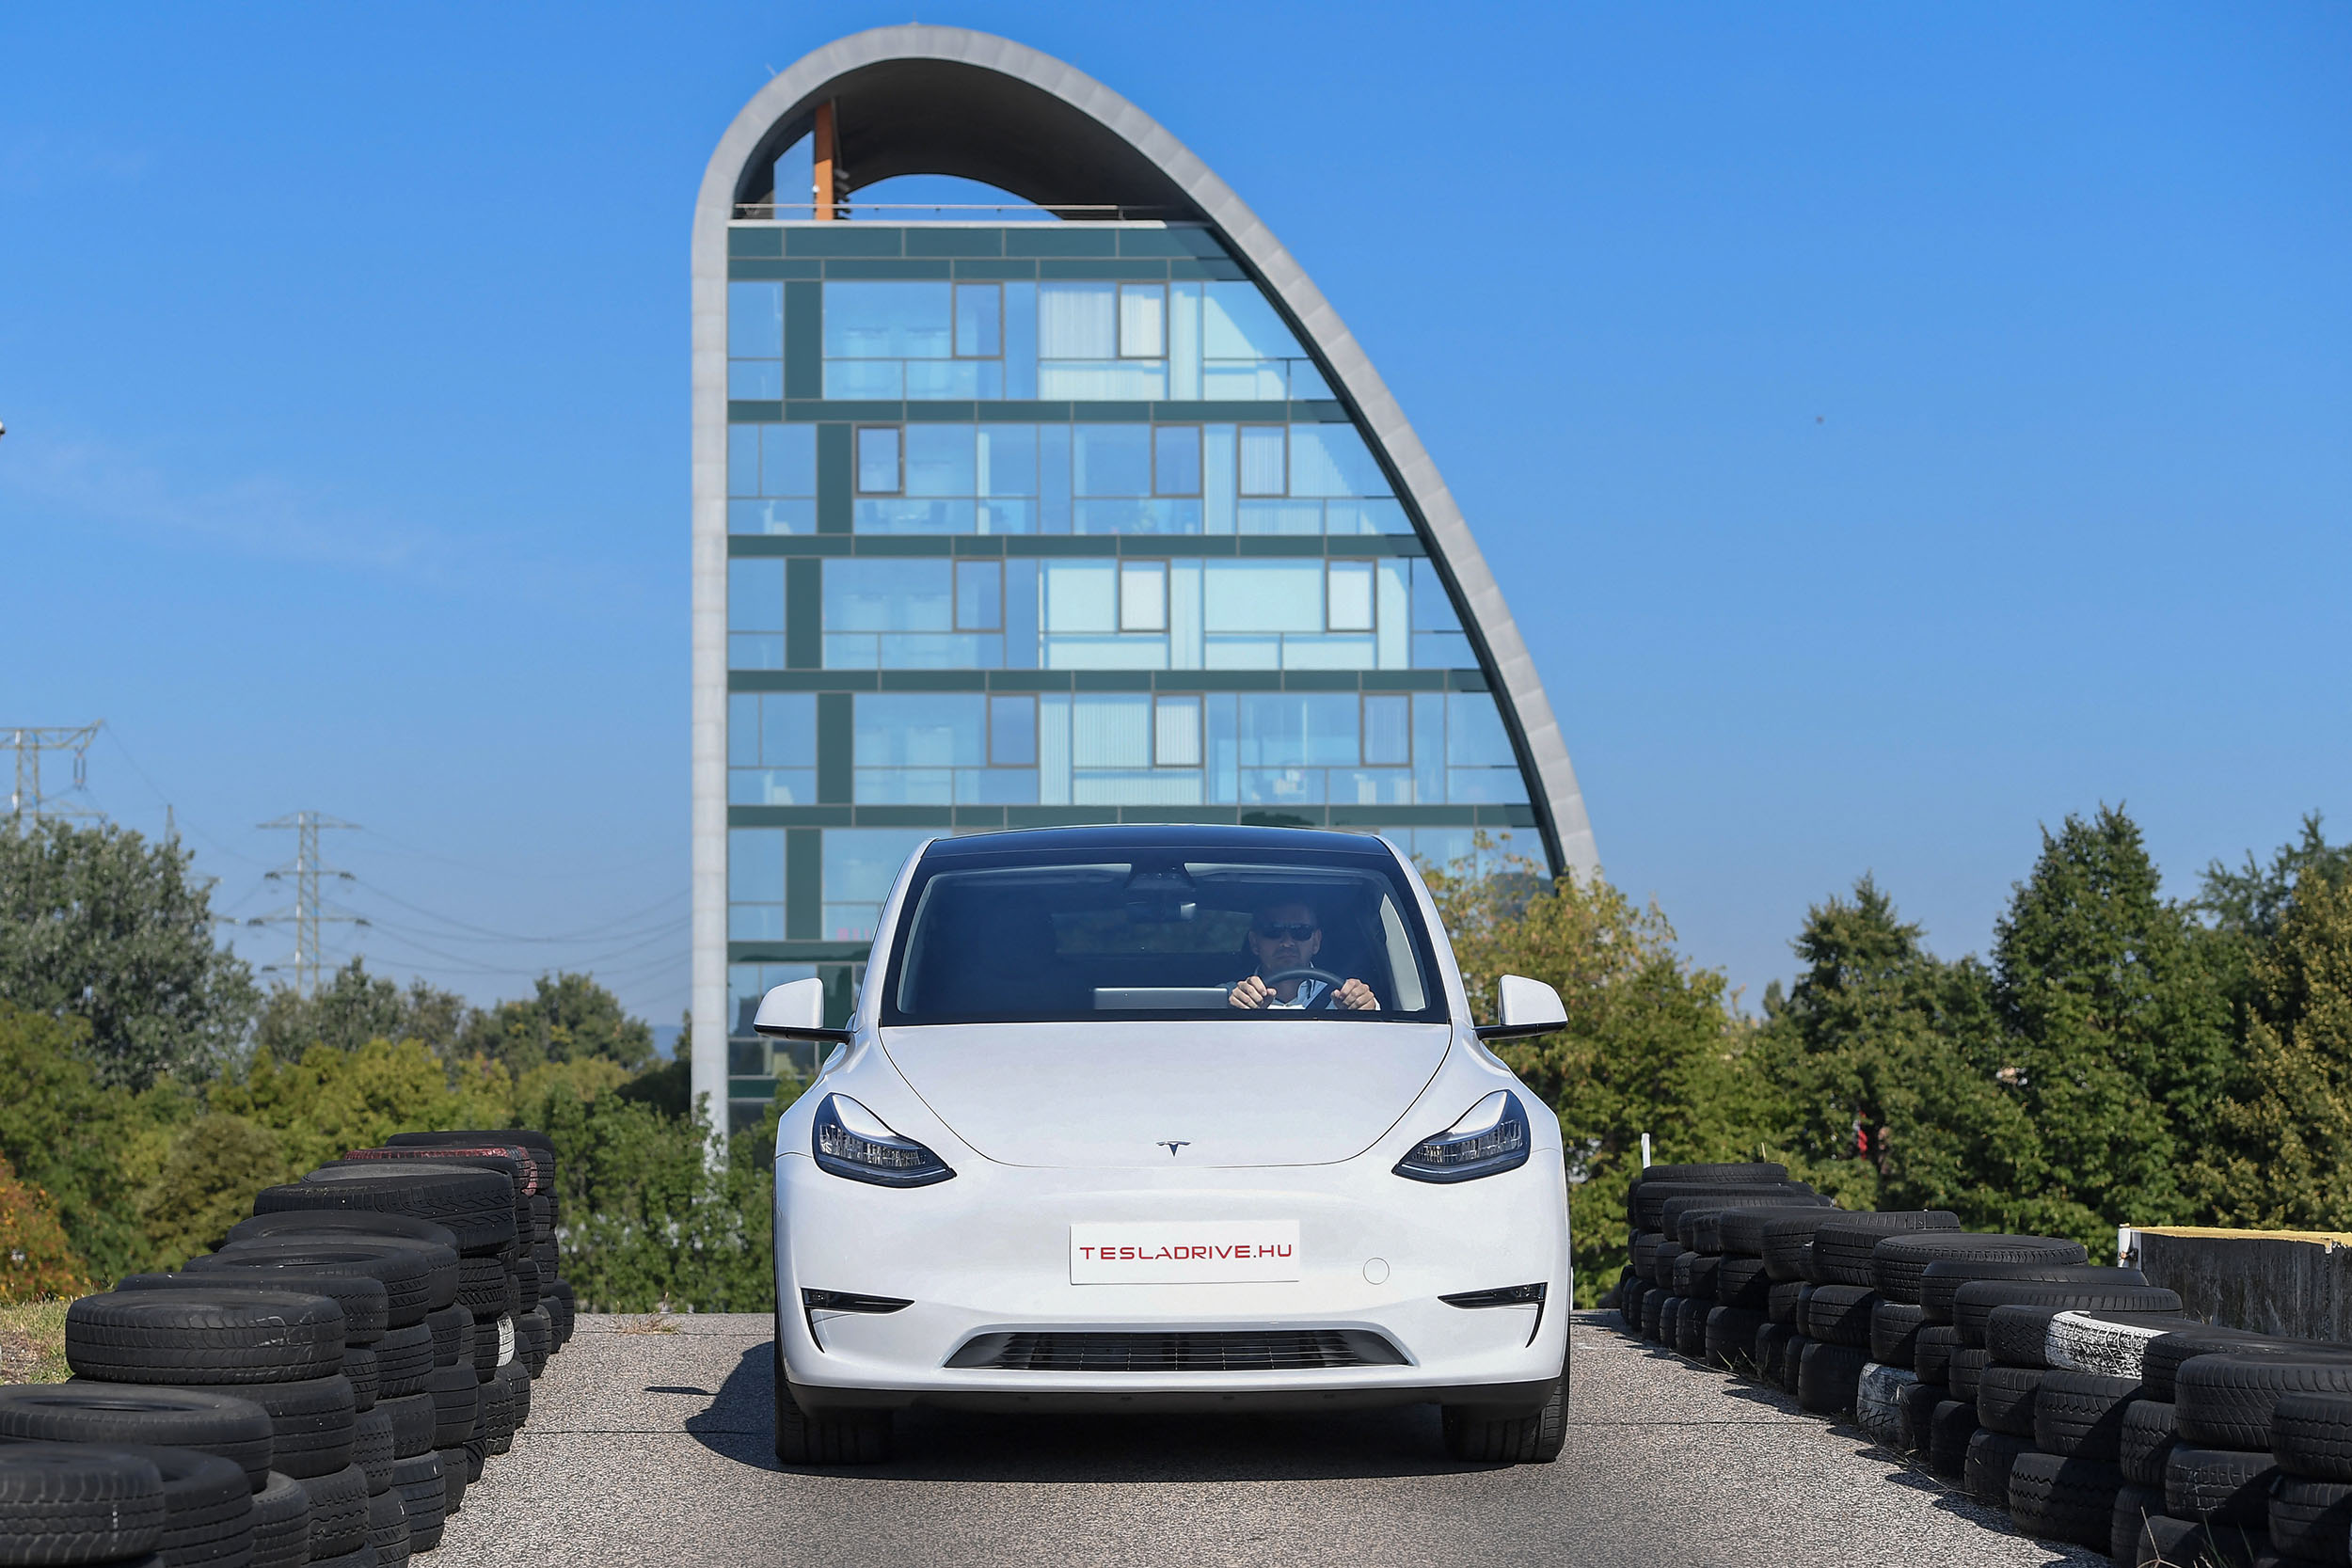 """A picture taken on September 5, 2020 shows a """"Tesla Model Y"""" car, an all-electric compact SUV by US electric car giant Tesla, during its presentation at the Automobile Club in Budapest. (Photo by ATTILA KISBENEDEK / AFP)"""